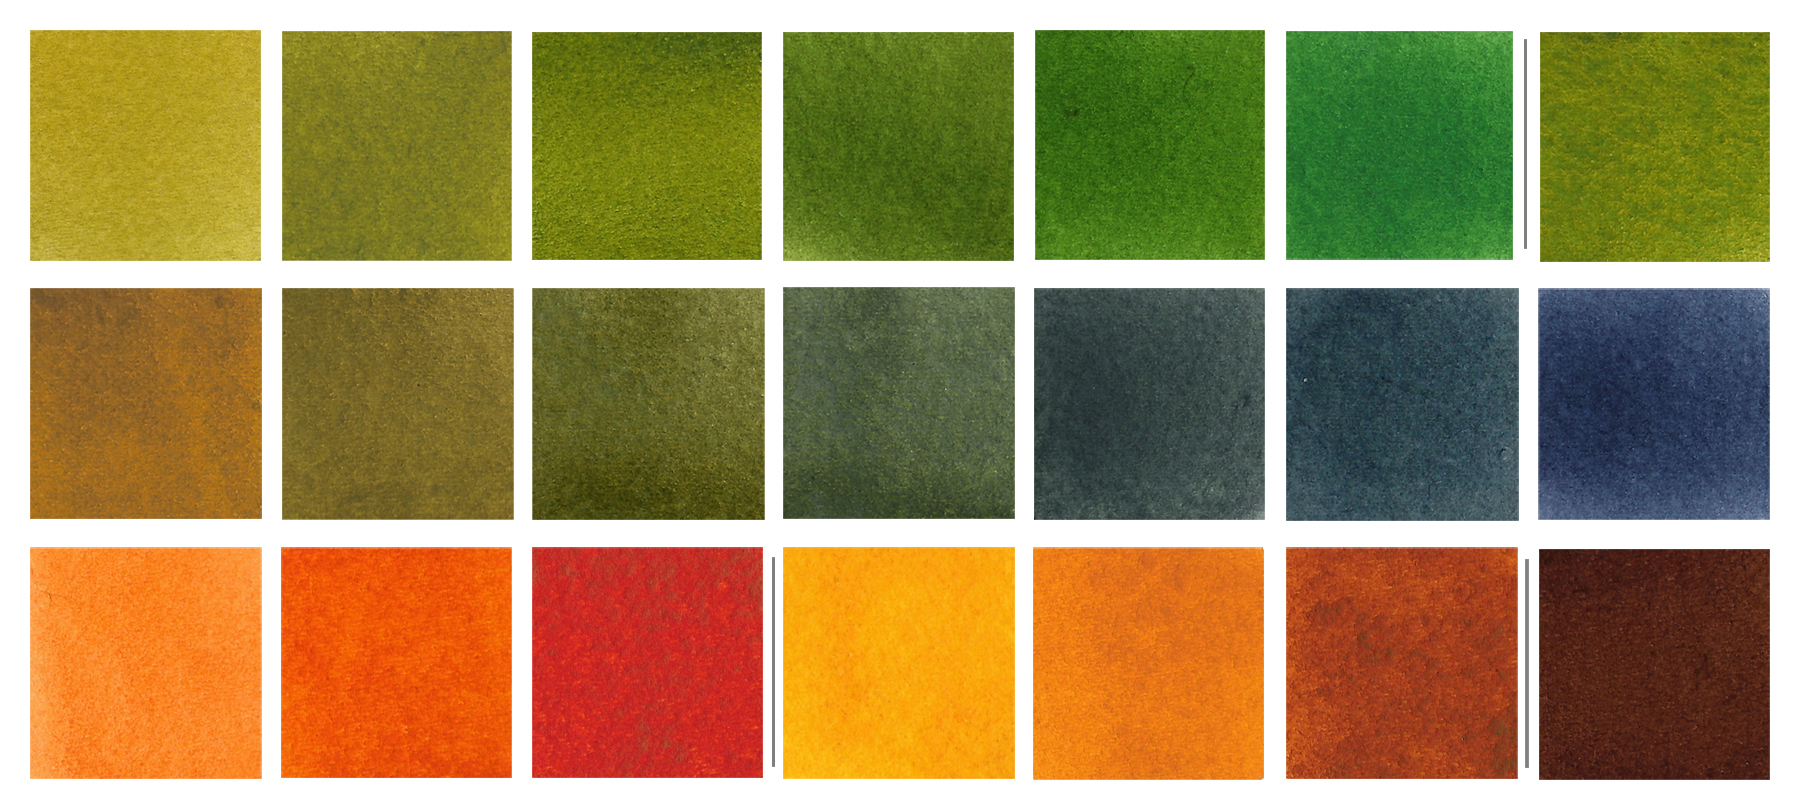 PY110 mixes: Top row, PY110 mixed with Phthalo Green (PG7) with the exception of the last swatch that showcases the beautiful granulation achieved when mixing PY110 with Viridian. Middle row, a small sampling of natural greens achieved when mixing PY110 with a standard palette blue like Ultramarine (PB29). Bottom row, a gorgeous range of brilliant corals to deep earths that results when mixing PY110 with violets and reds like (from left) Quin Rose (PV19), Transparent Red Oxide (PR101), and Perylene Violet (PV29).